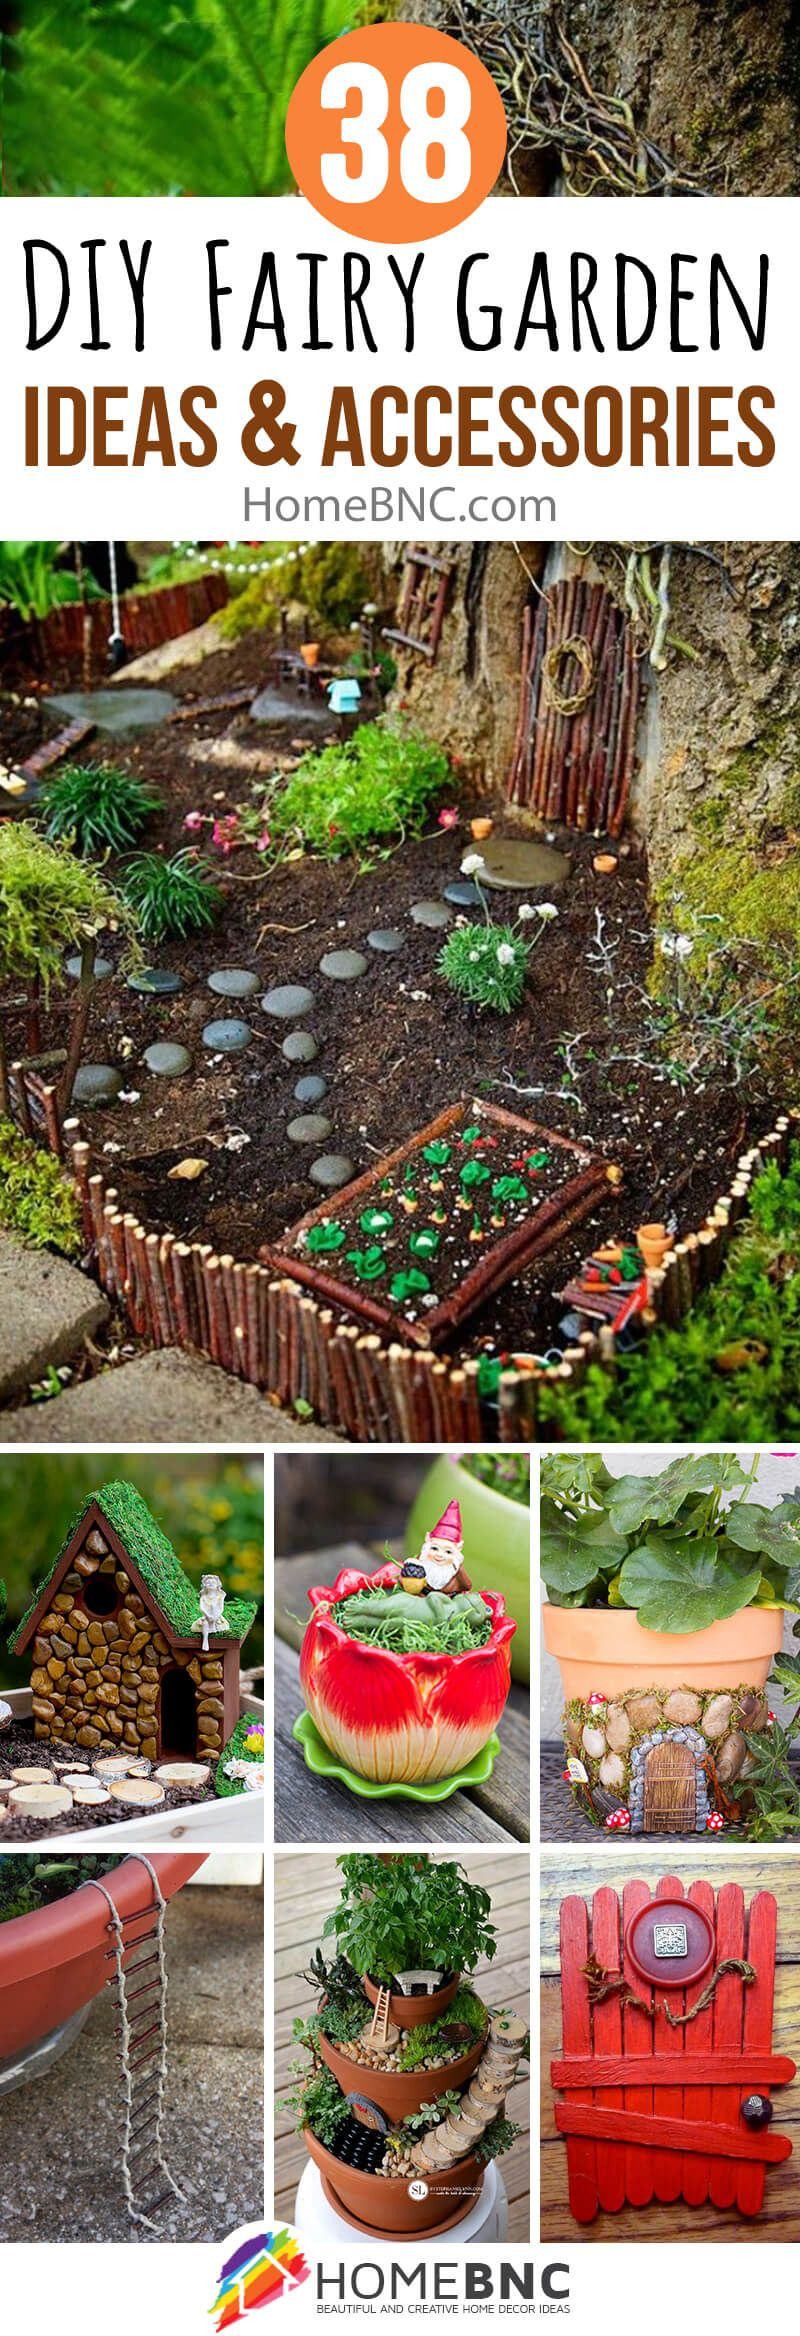 38 Faboluos Diy Fairy Garden Ideas And Accessories To Add Some